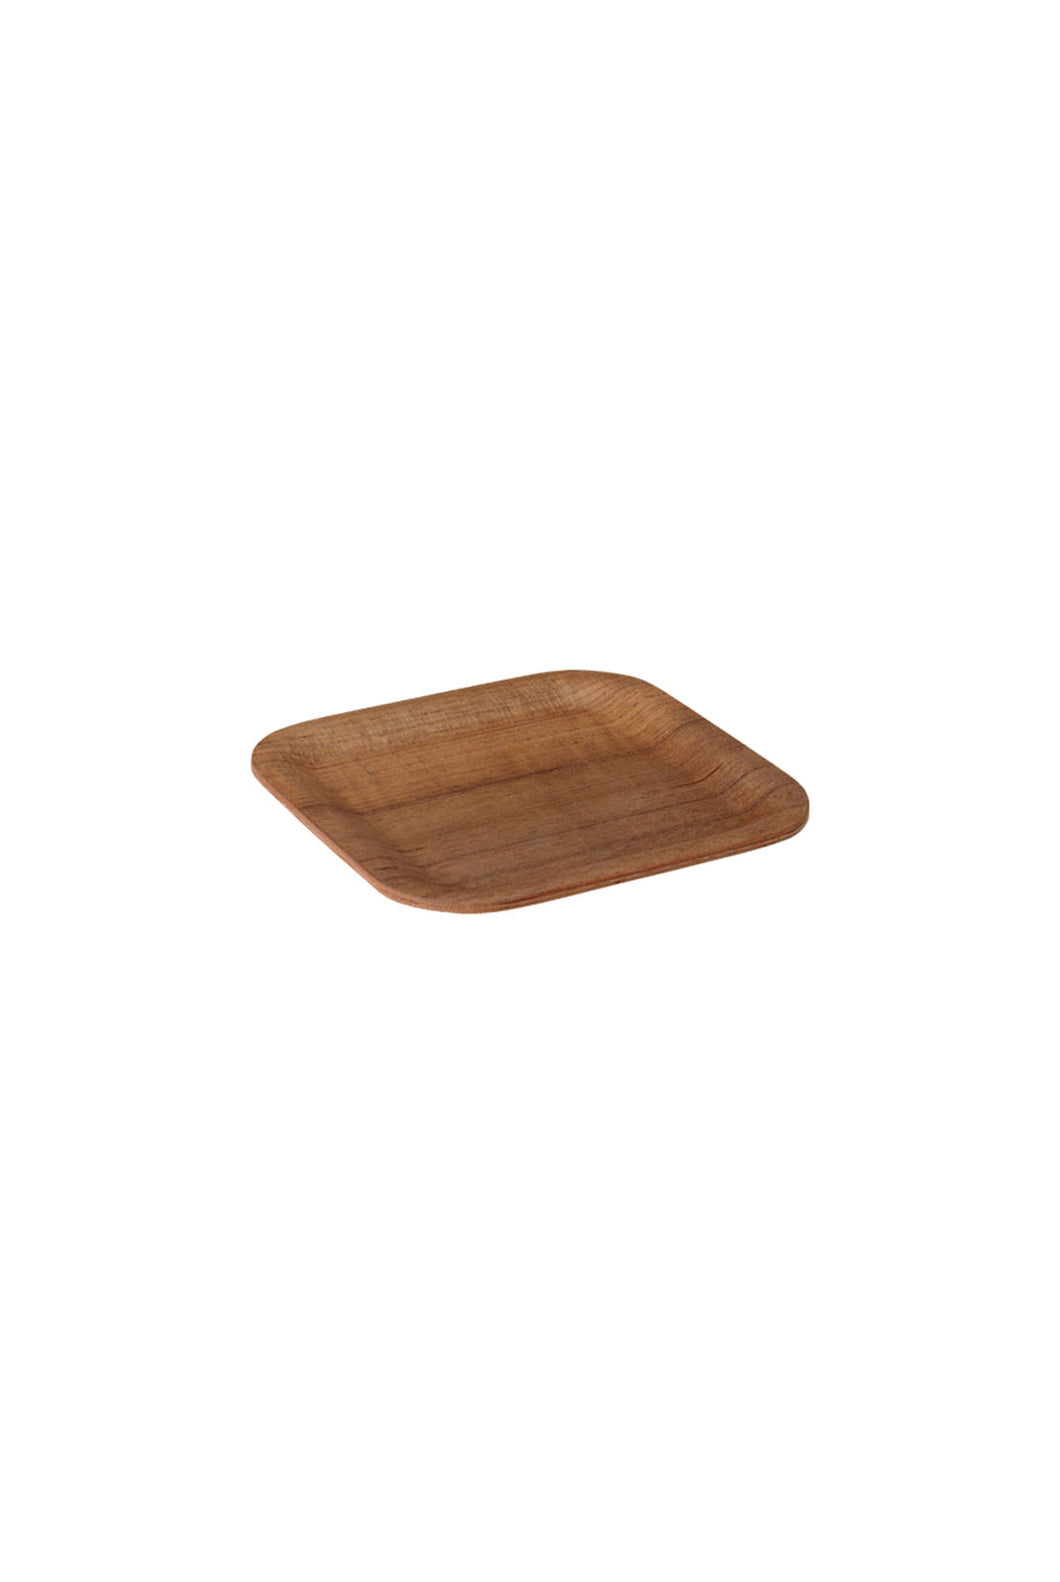 Kinto - Nonslip Square Tray - 160mm - Teak